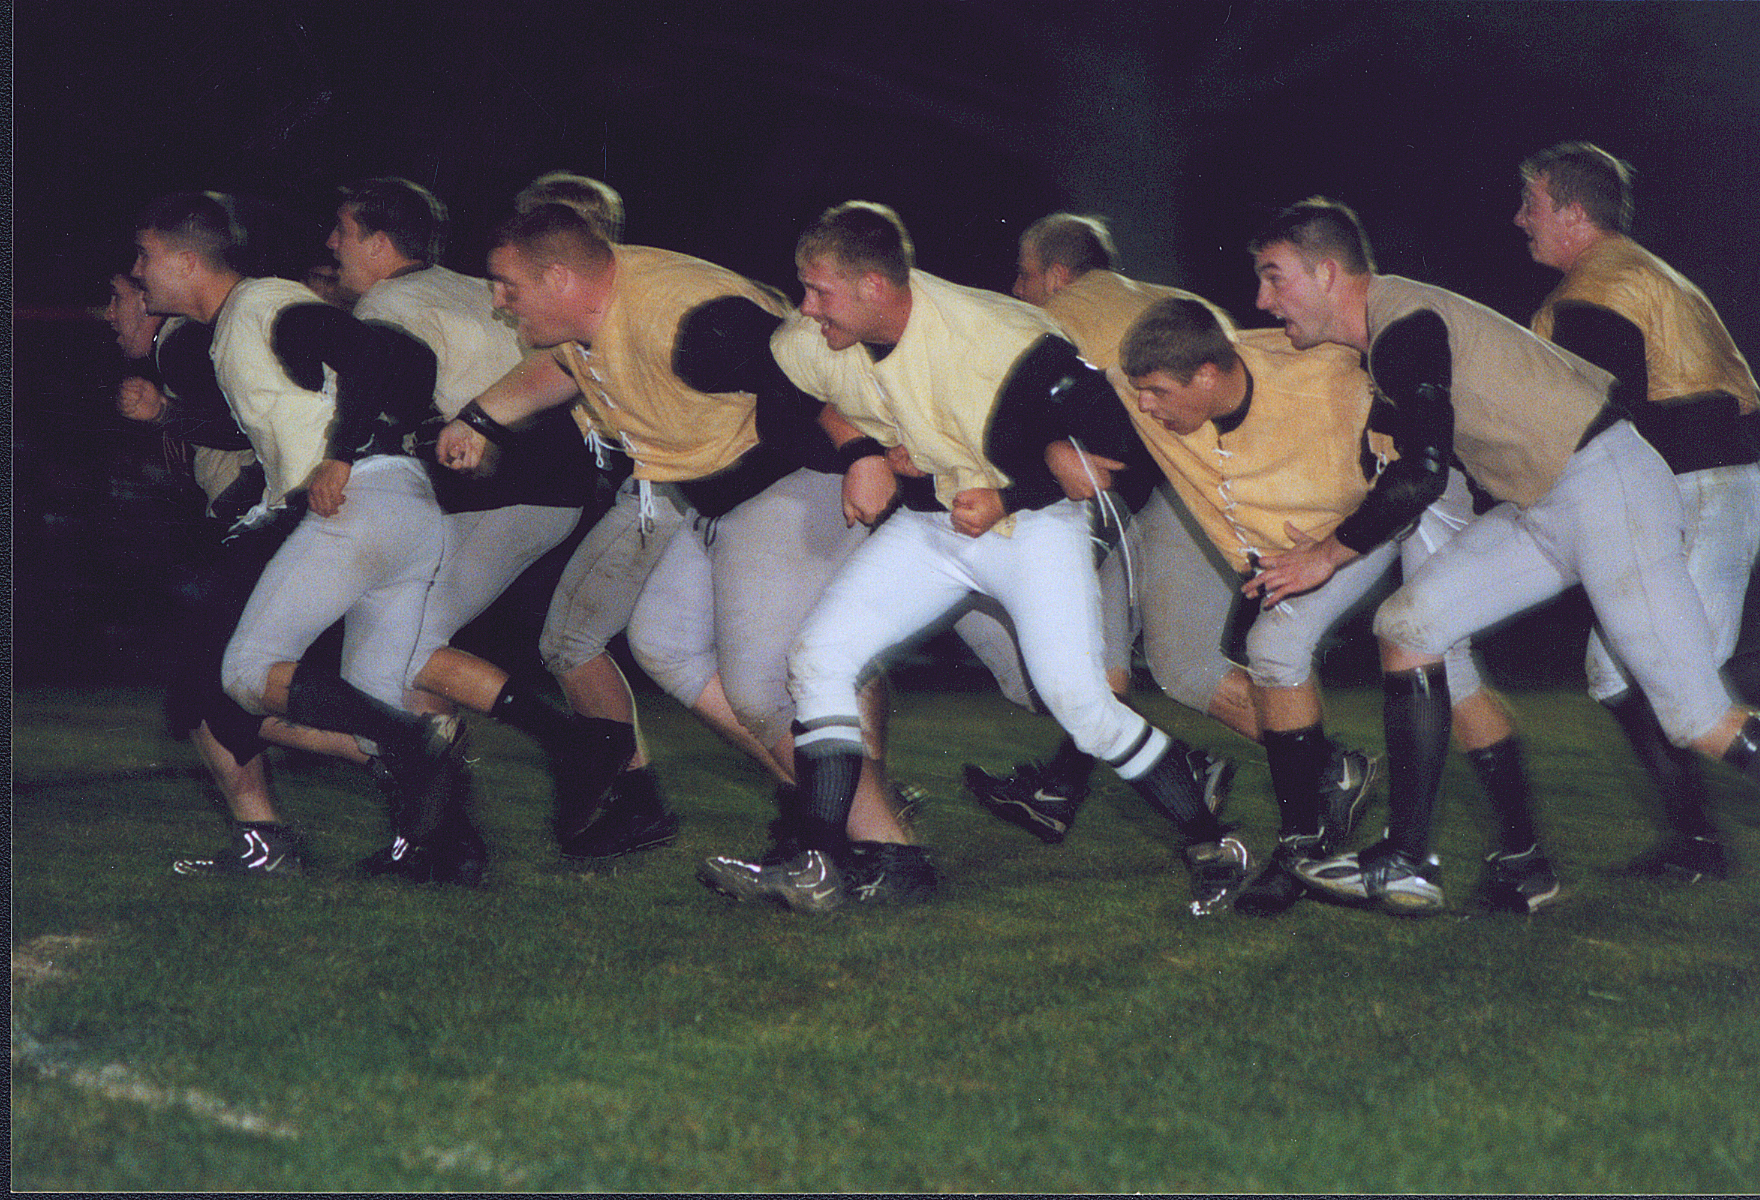 Football players in the wedge formation